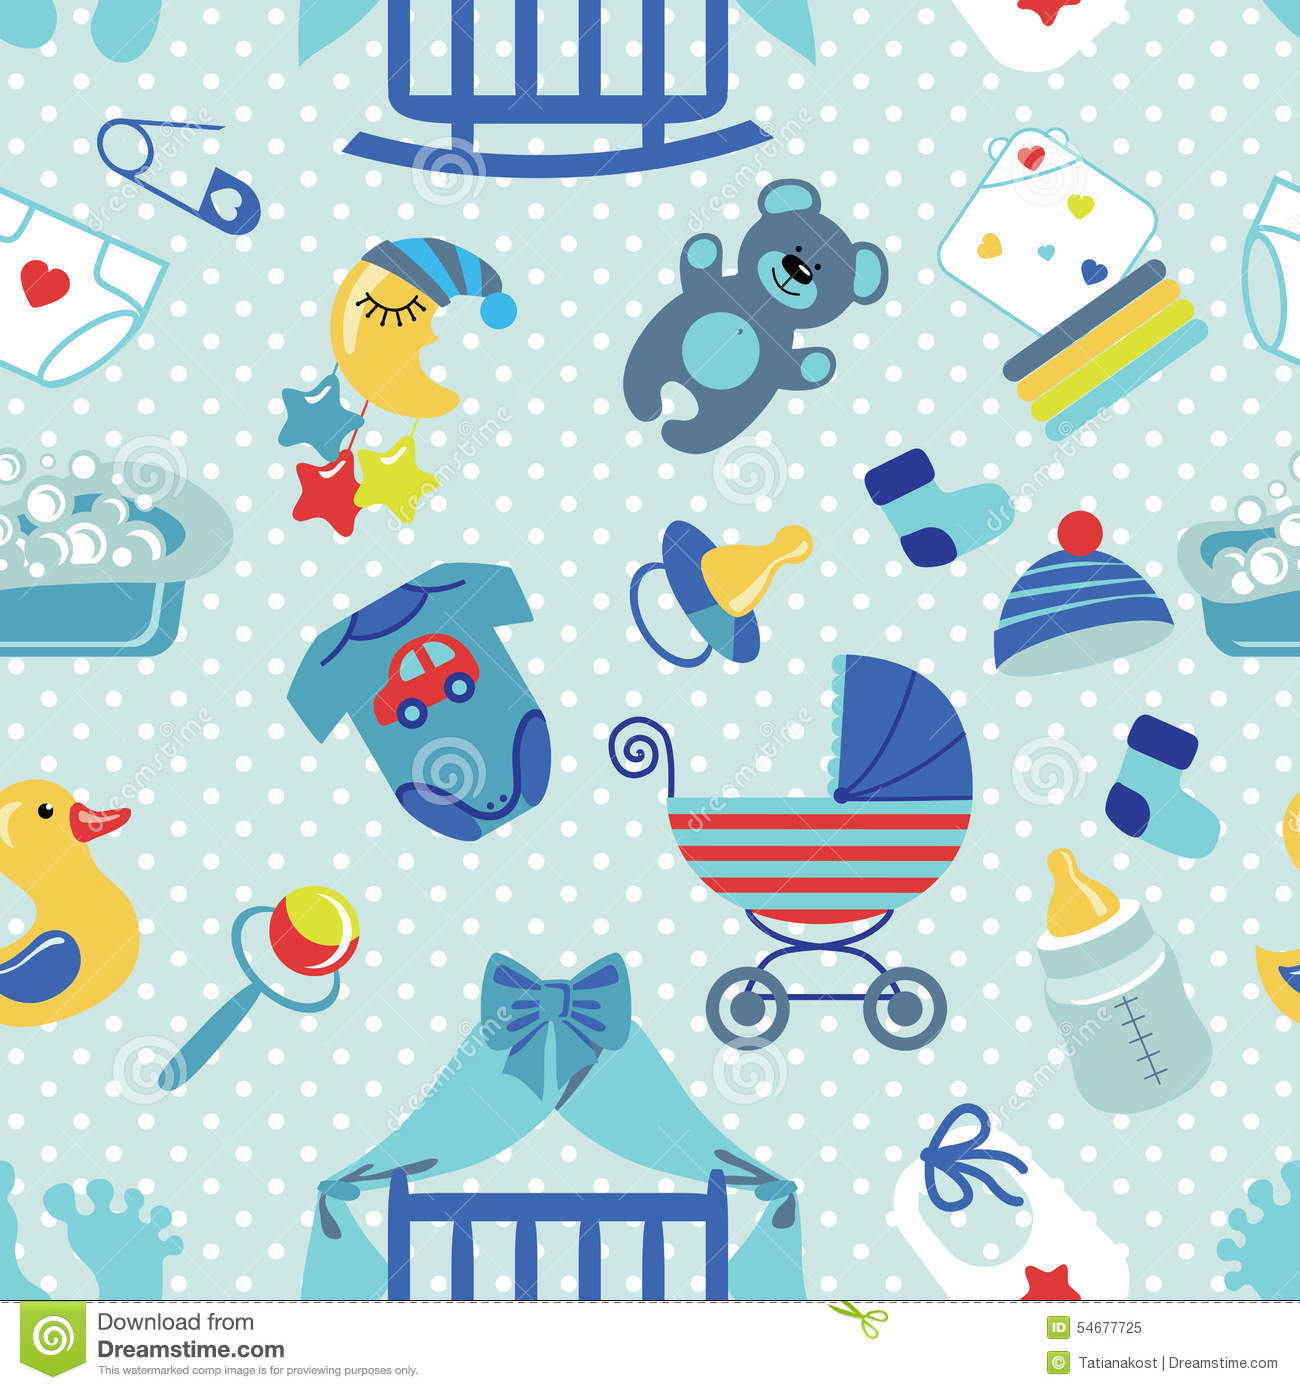 Baby boy background wallpaper baby boy background images baby boy - Baby Backdrop Background Boy